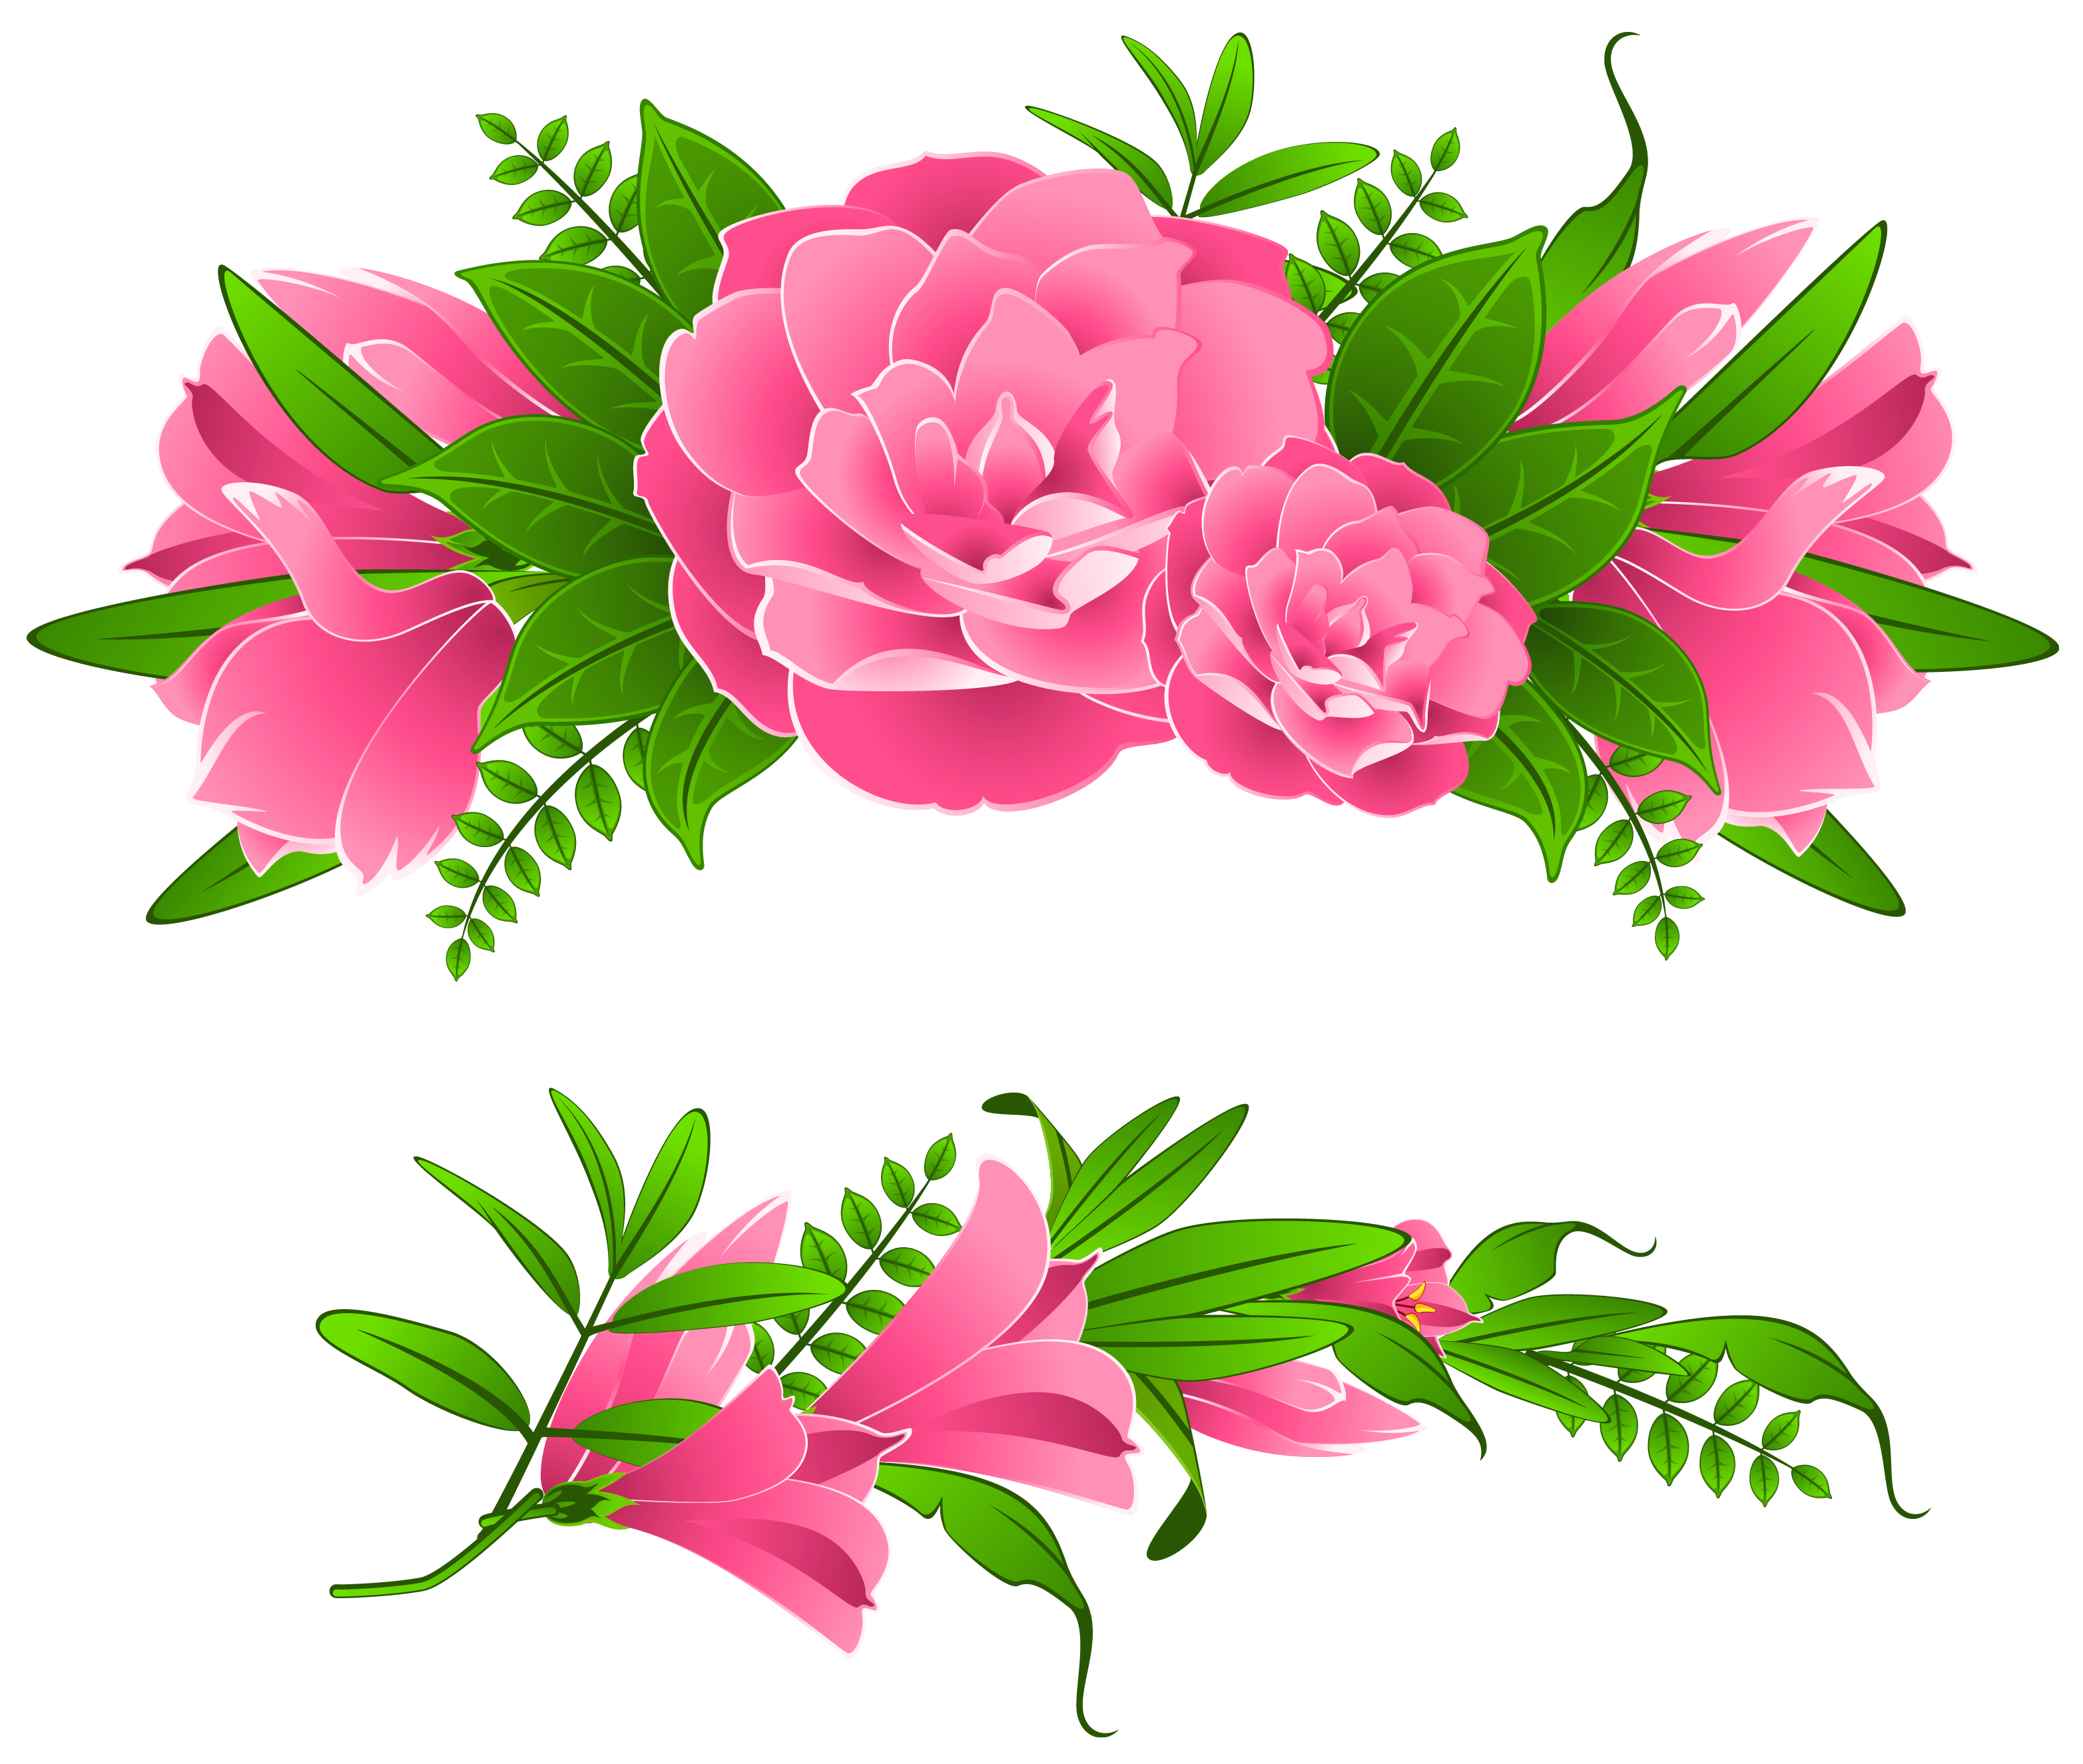 Free clipart flower borders picture freeuse library 4 2 Flowers Borders Free Png Image picture freeuse library